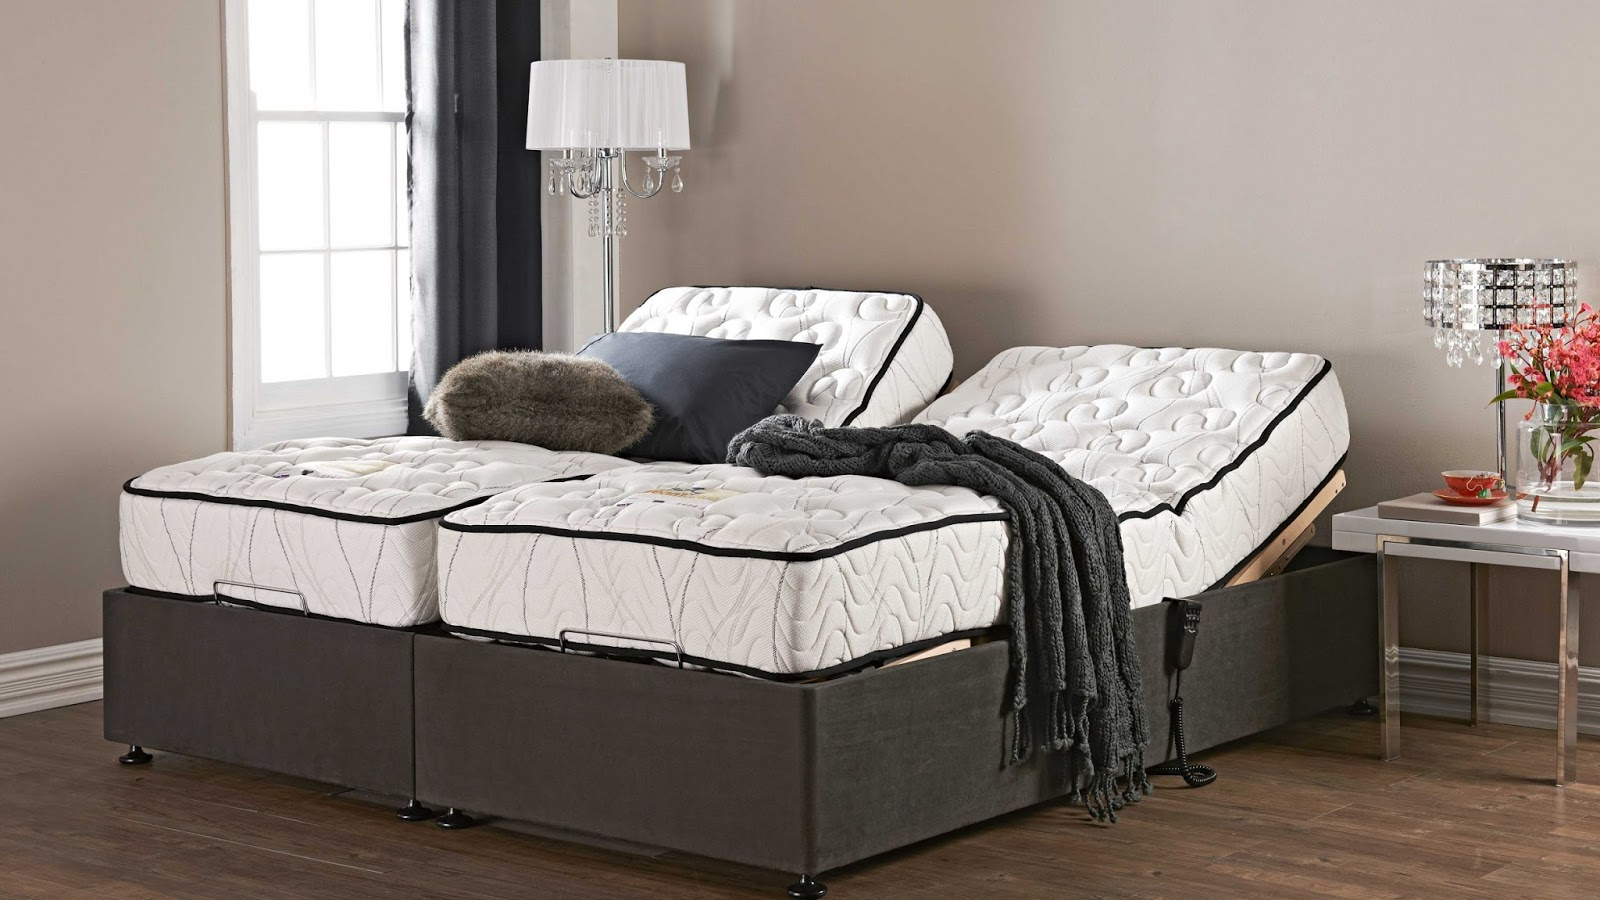 Luxury Adjustable Mattress Preferences